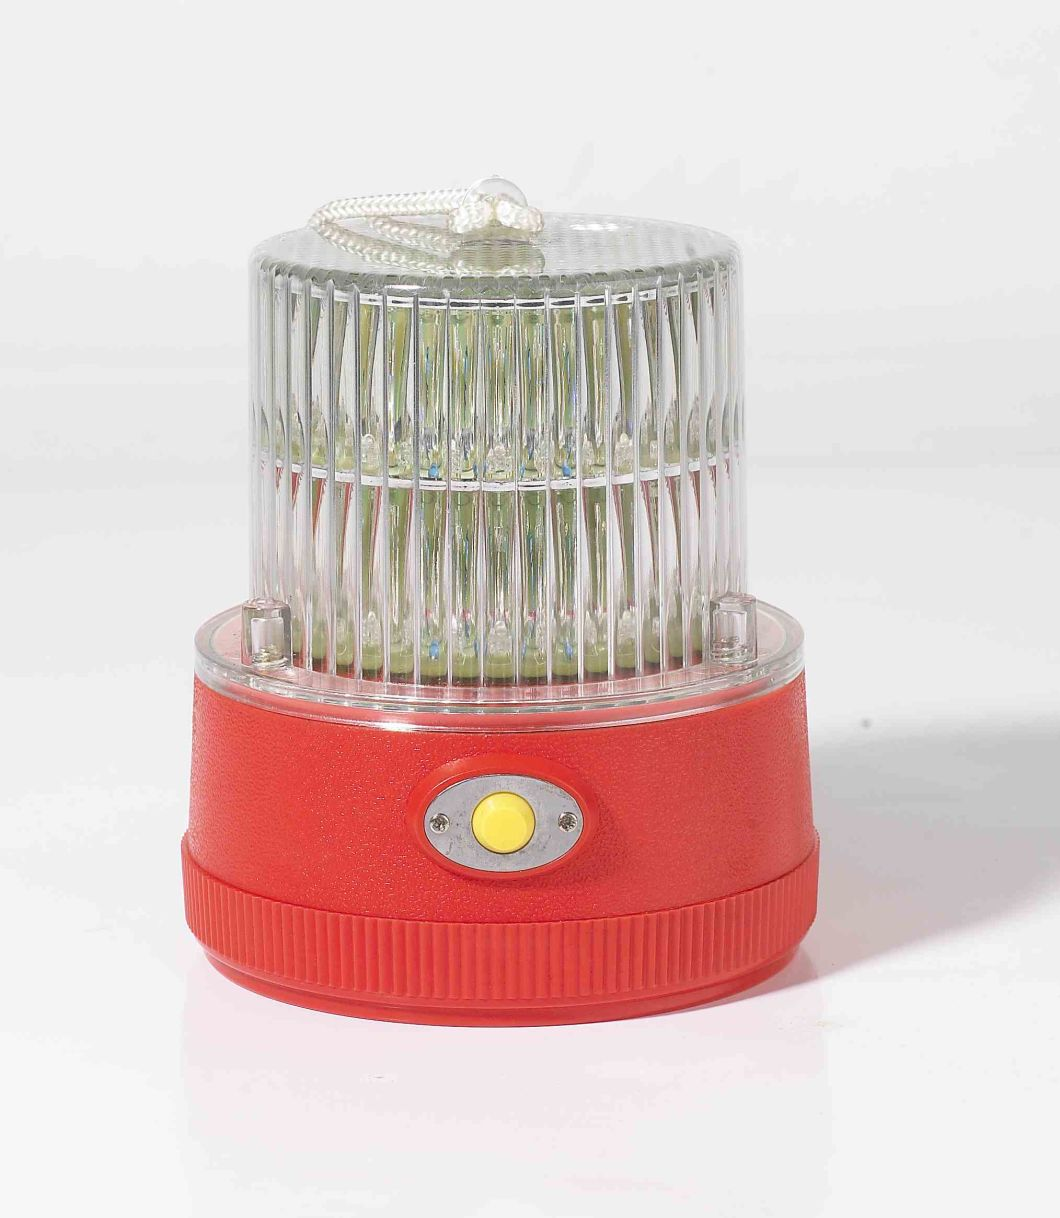 Portable Alarm Light (Ltd 1362)